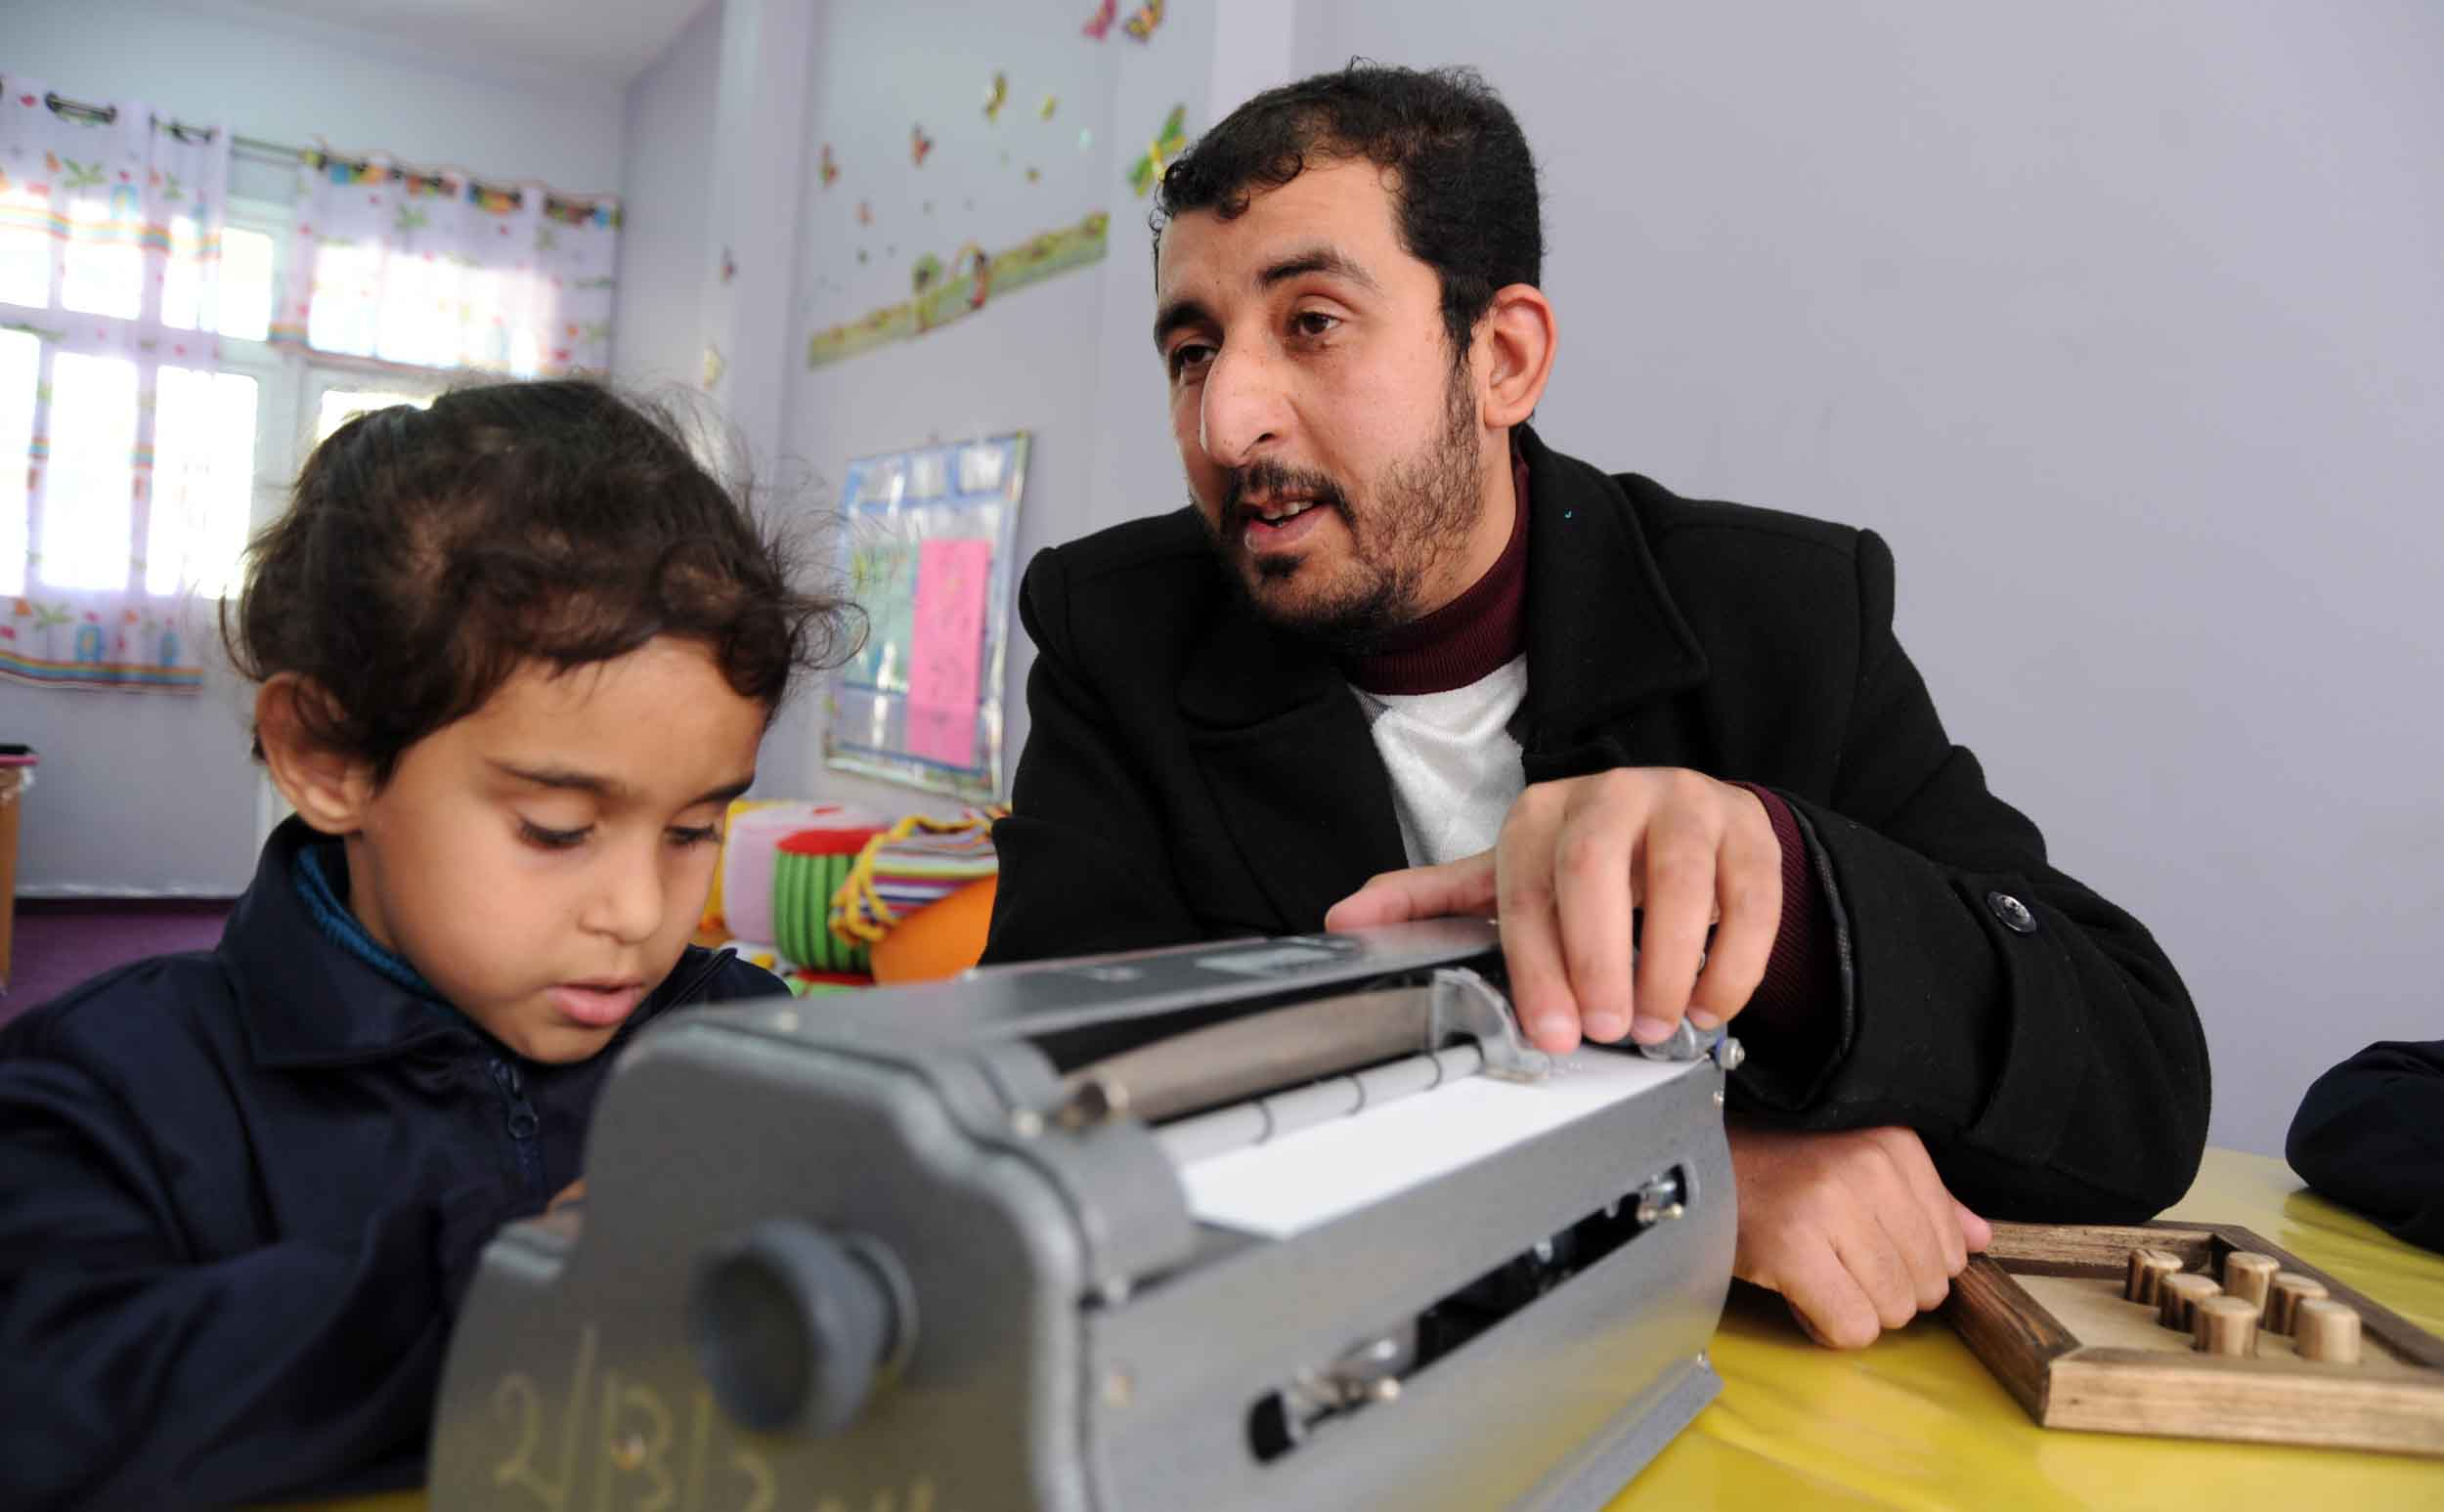 Mohamed Abu Mousa is teaching 4 year-old Salma how to use type the Arabic alphabet in Braille language. Mohamed was once himself a pupil at RCVI.